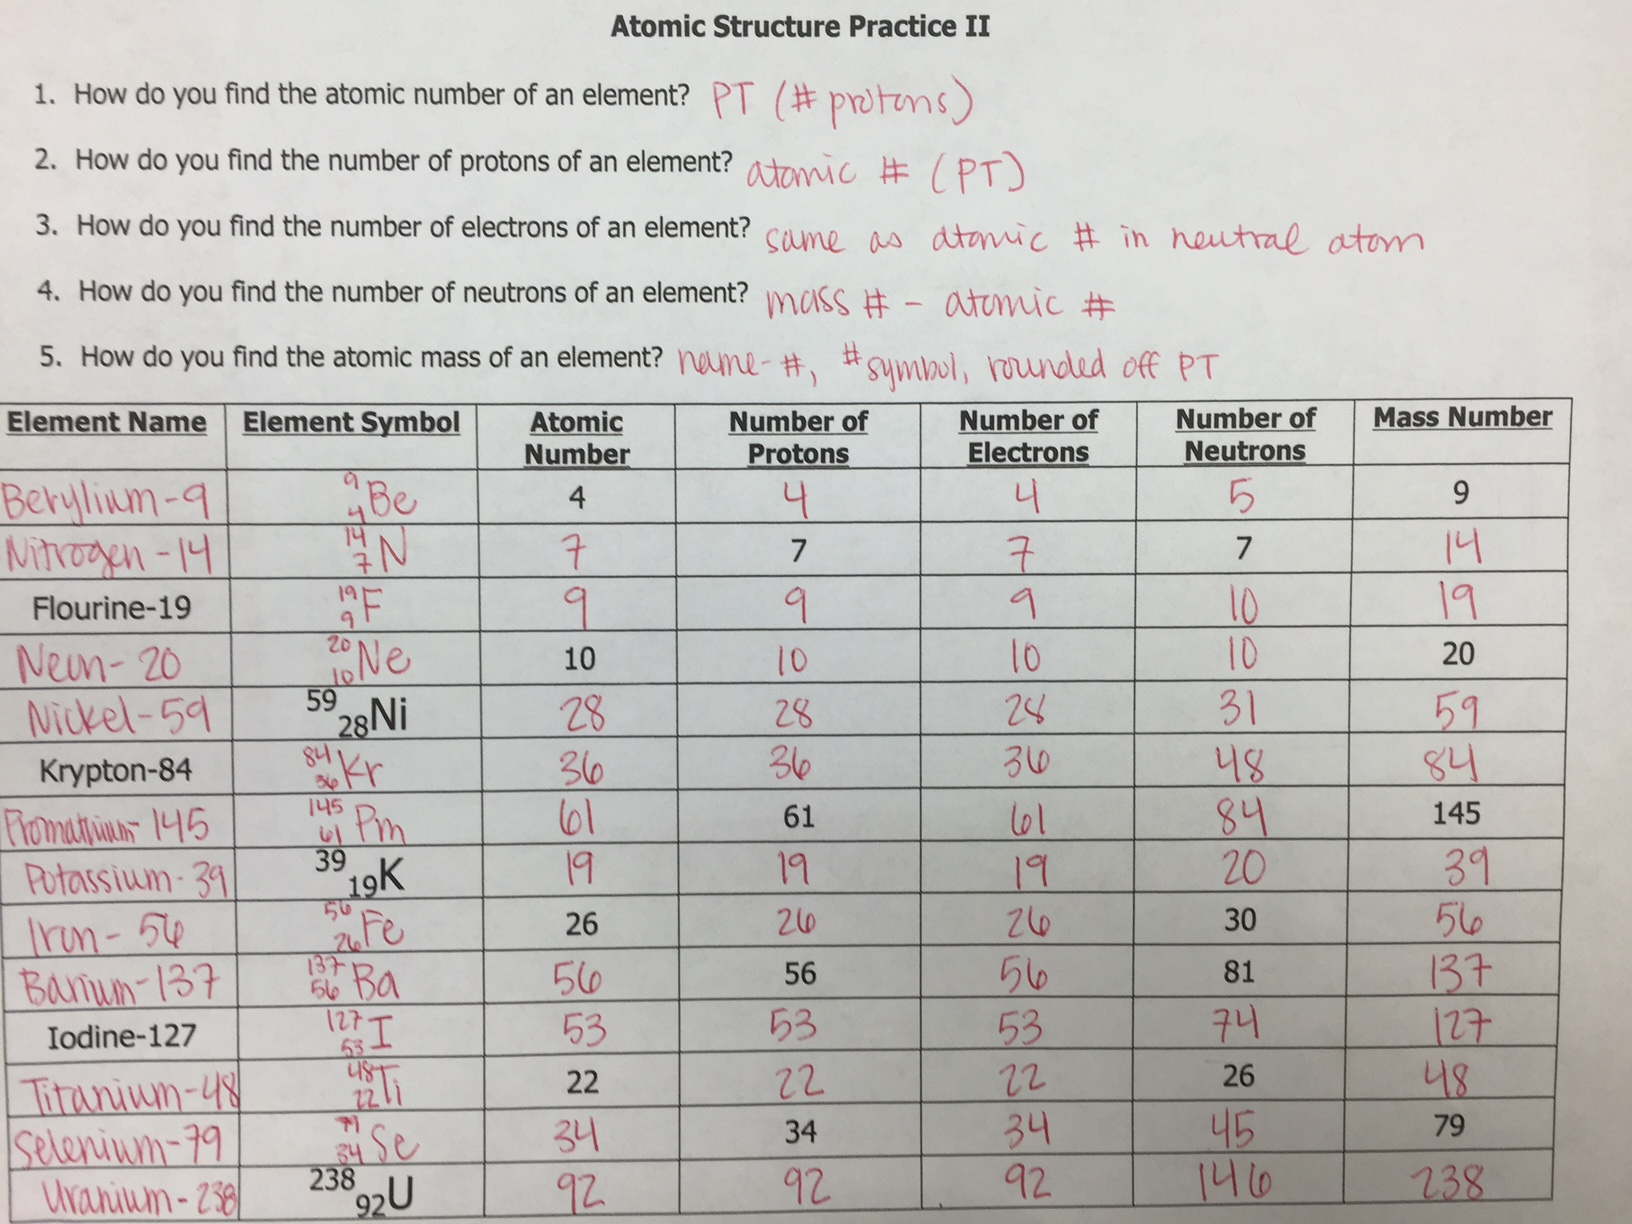 Worksheets Atomic Structure Worksheet Answers atomic structure worksheet answers index of lukchihangf6 chemistryworksheetrevision student